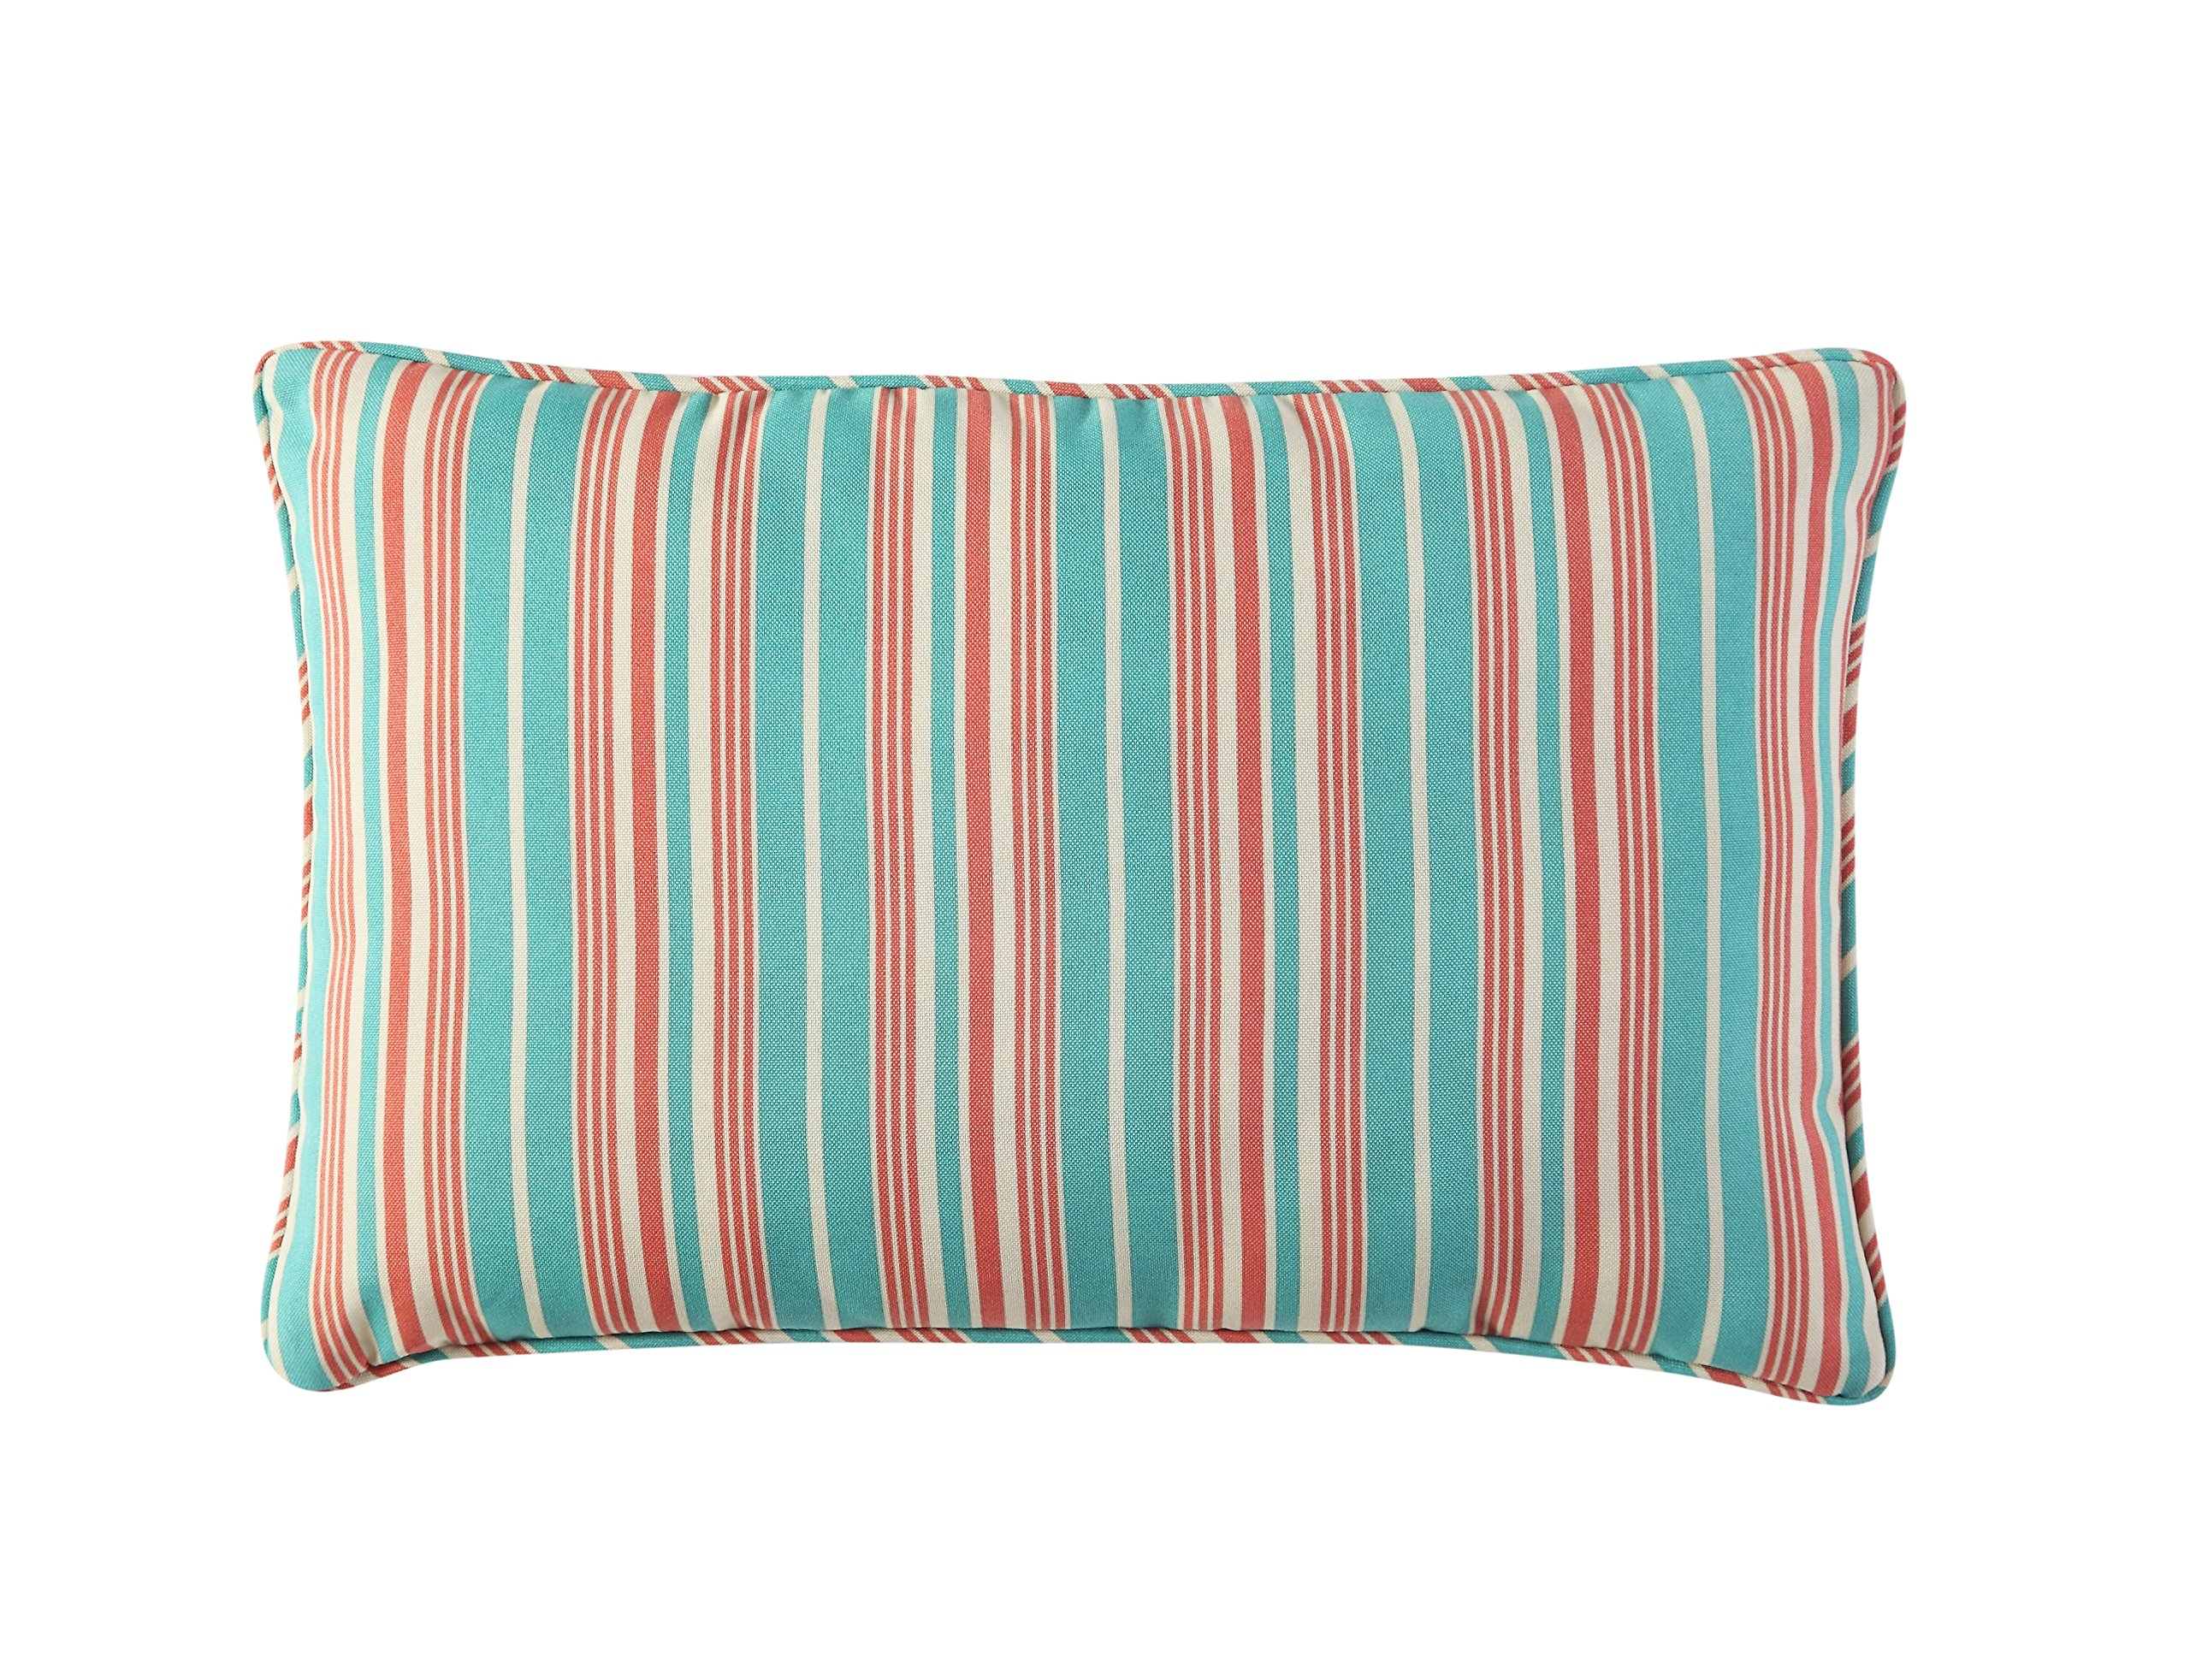 WAVERLY Indoor/Outdoor Decorative Throw Cushion – 19 x 12 Inches, FILLING INCLUDED, Available in Many Designs, Comfortable and Durable (Aran Capri)